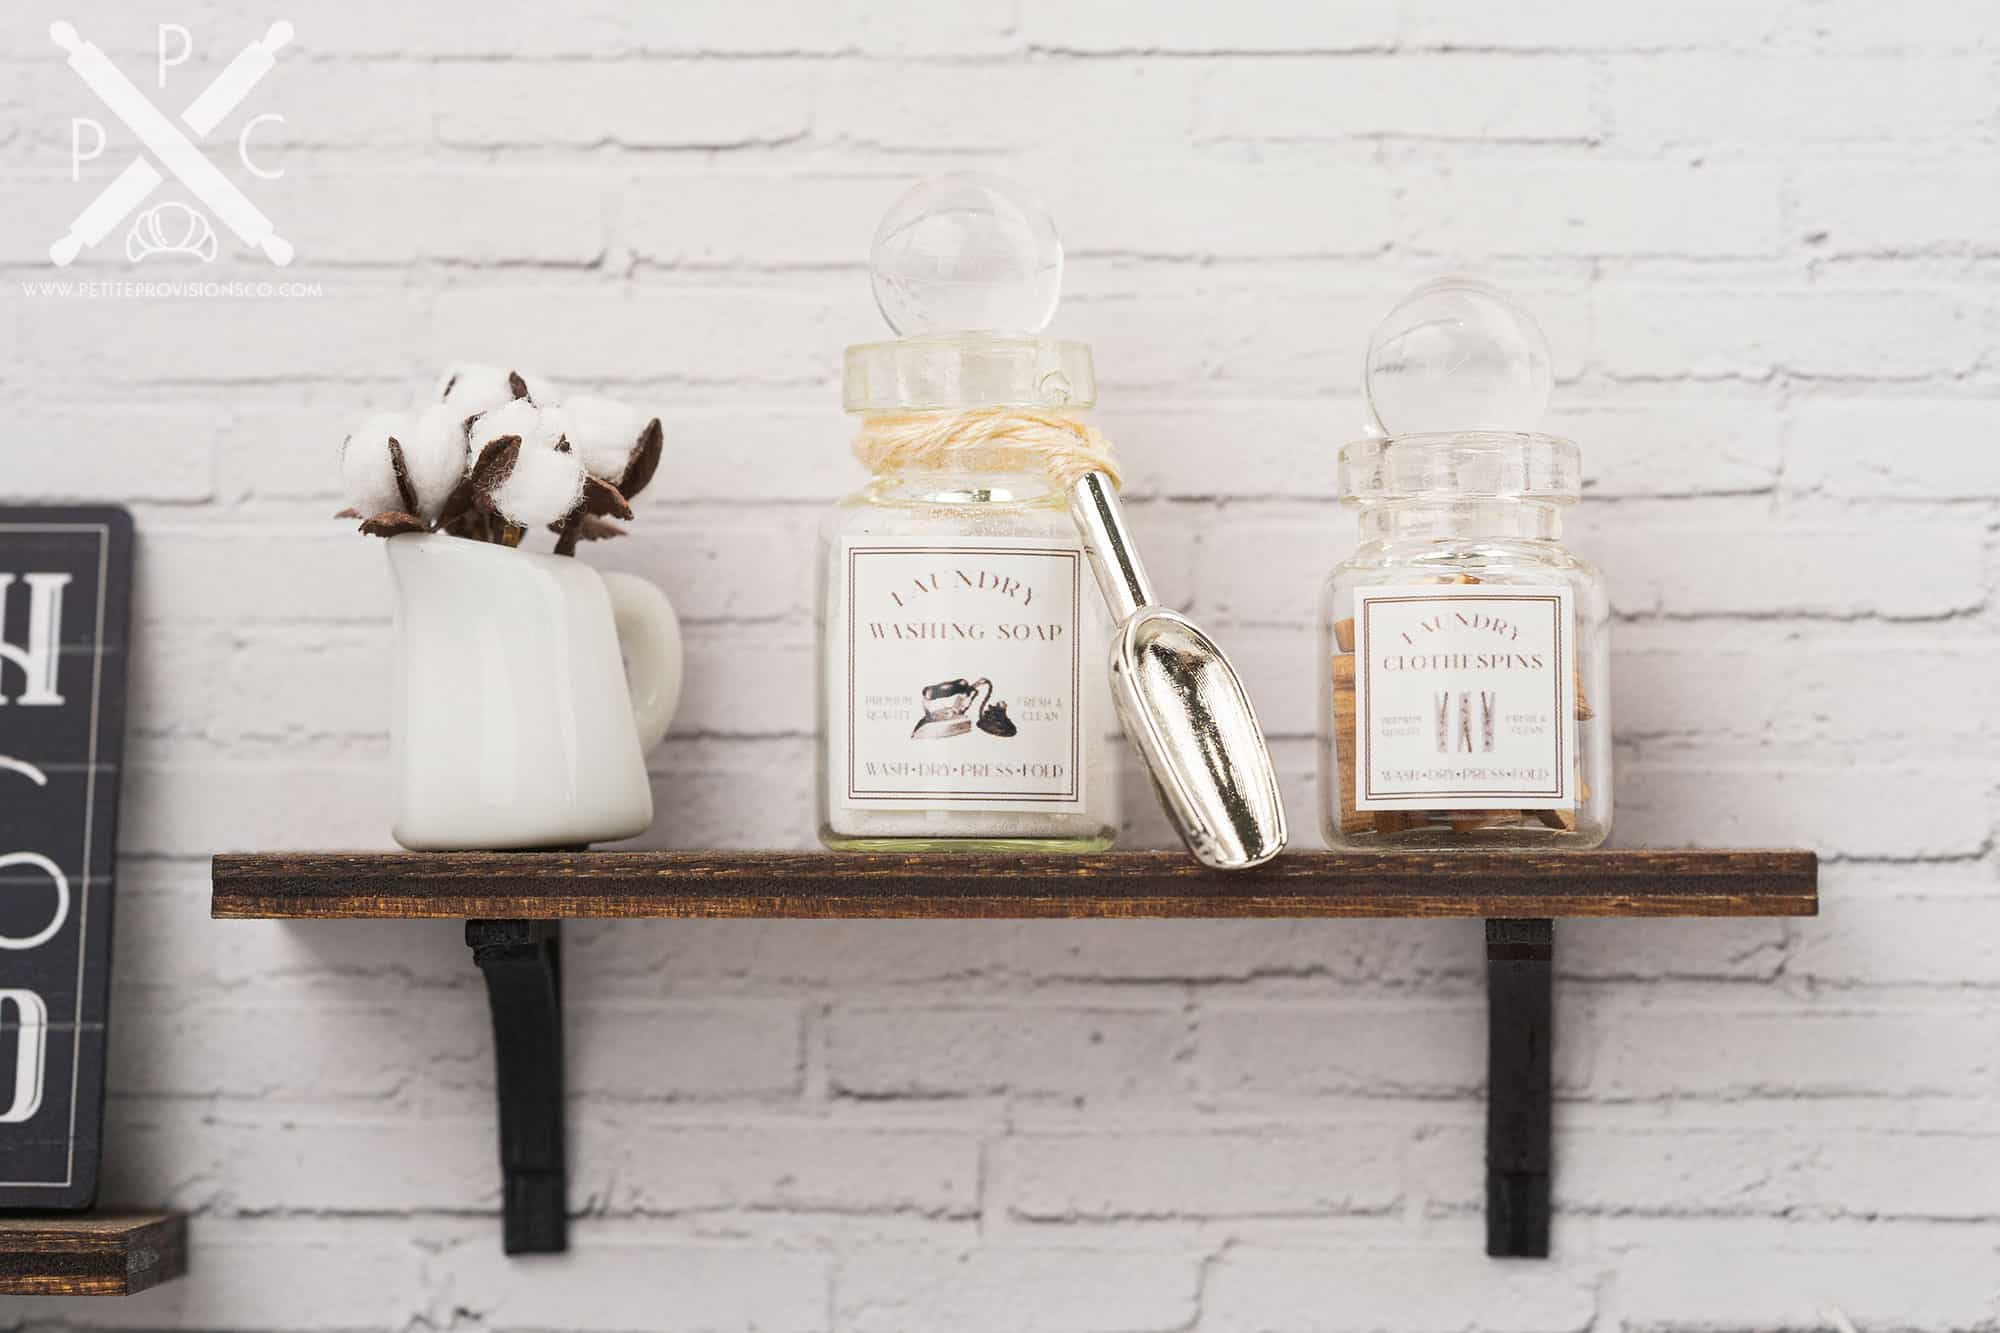 Handmade jars of laundry washing soap and clothespins in a one-inch scale laundry room scene with farmhouse decor